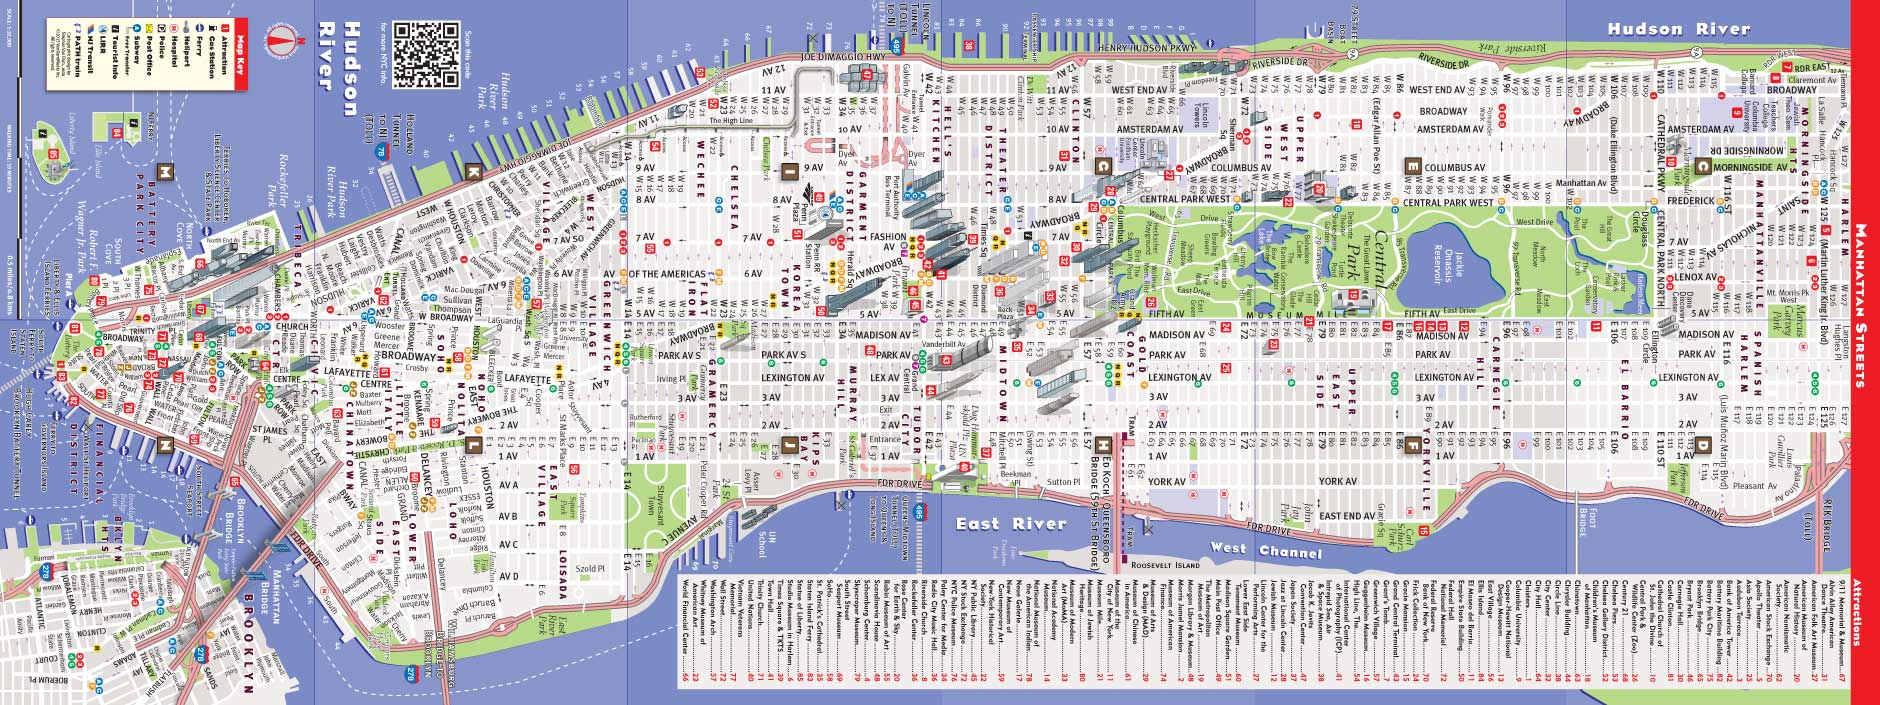 Printable New York Street Map | Travel Maps And Major Tourist - Printable City Street Maps